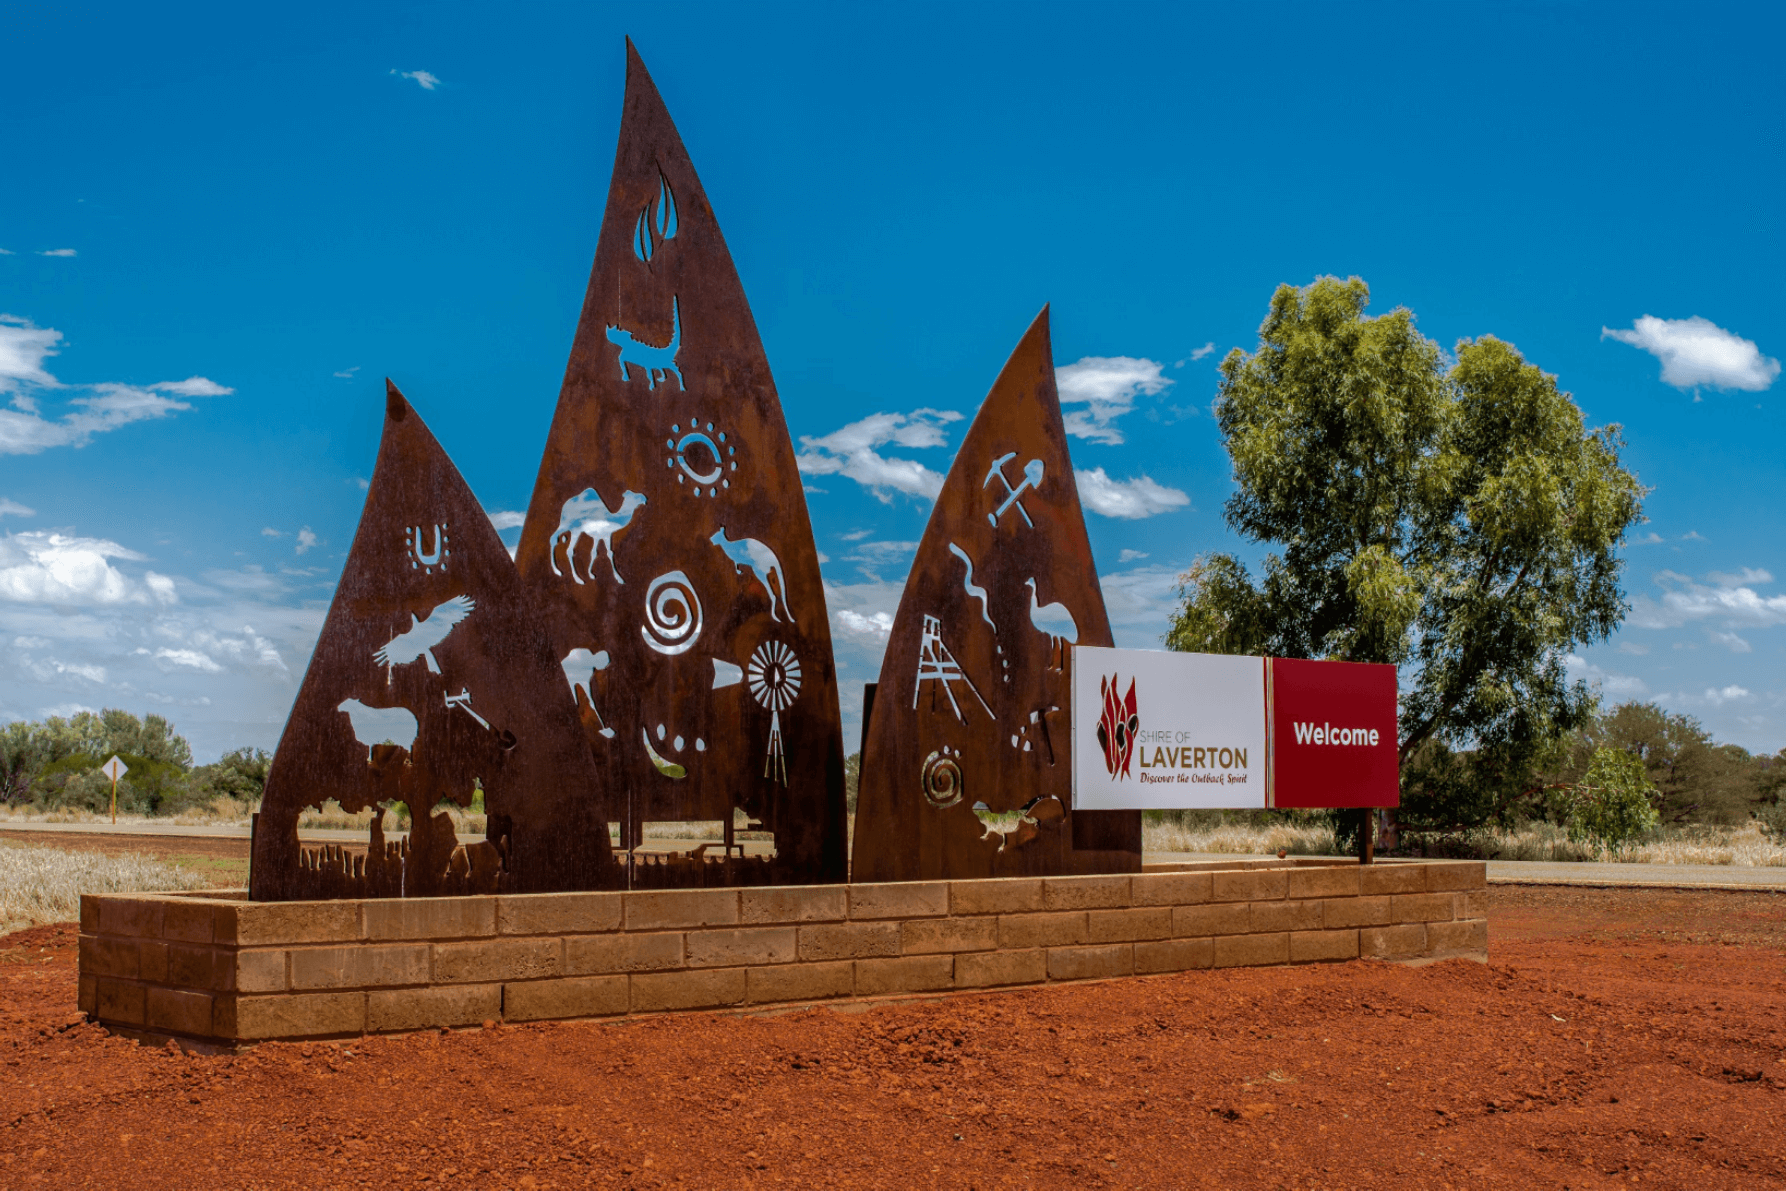 Shire of Laverton sign